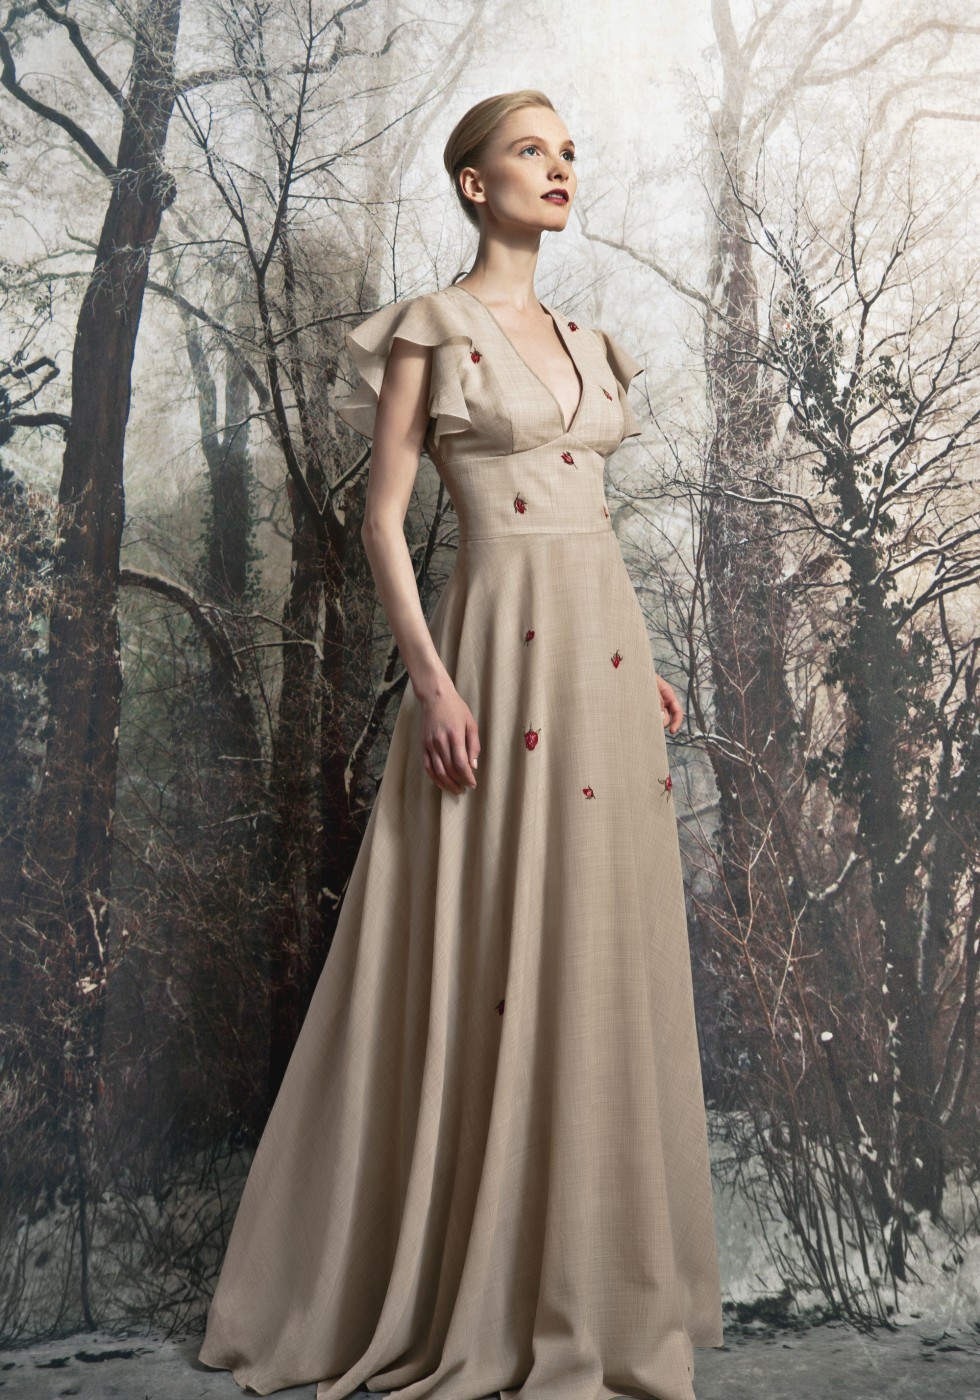 V-neck woolen gown with hand-embroidered roses